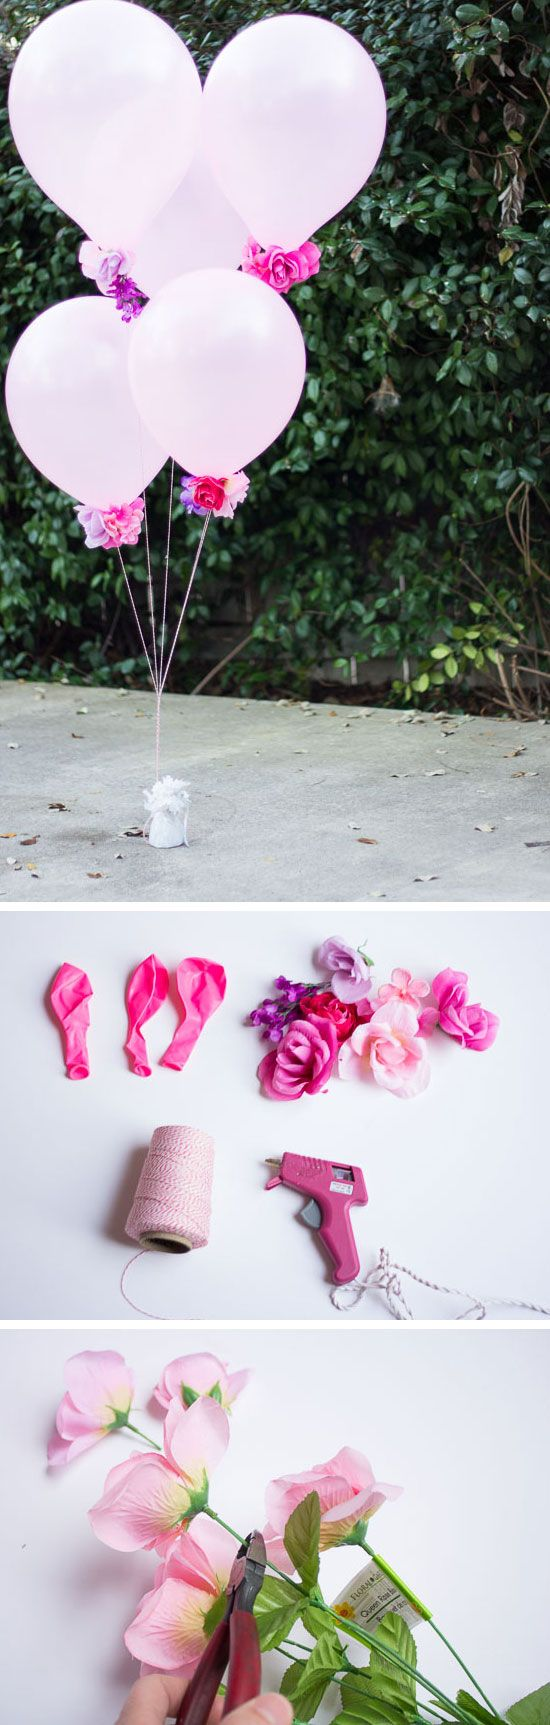 Flower Balloons | Click Pic for 22 DIY Summer Wedding Ideas on a Budget | DIY Garden Wedding Ideas on a Budget